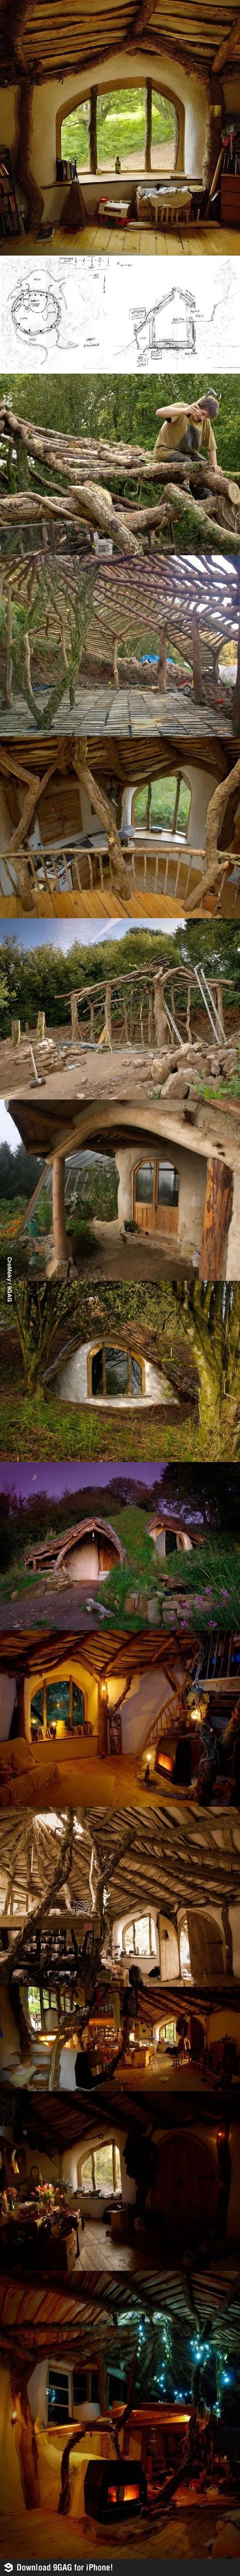 How to build a HOBBIT house - cool!